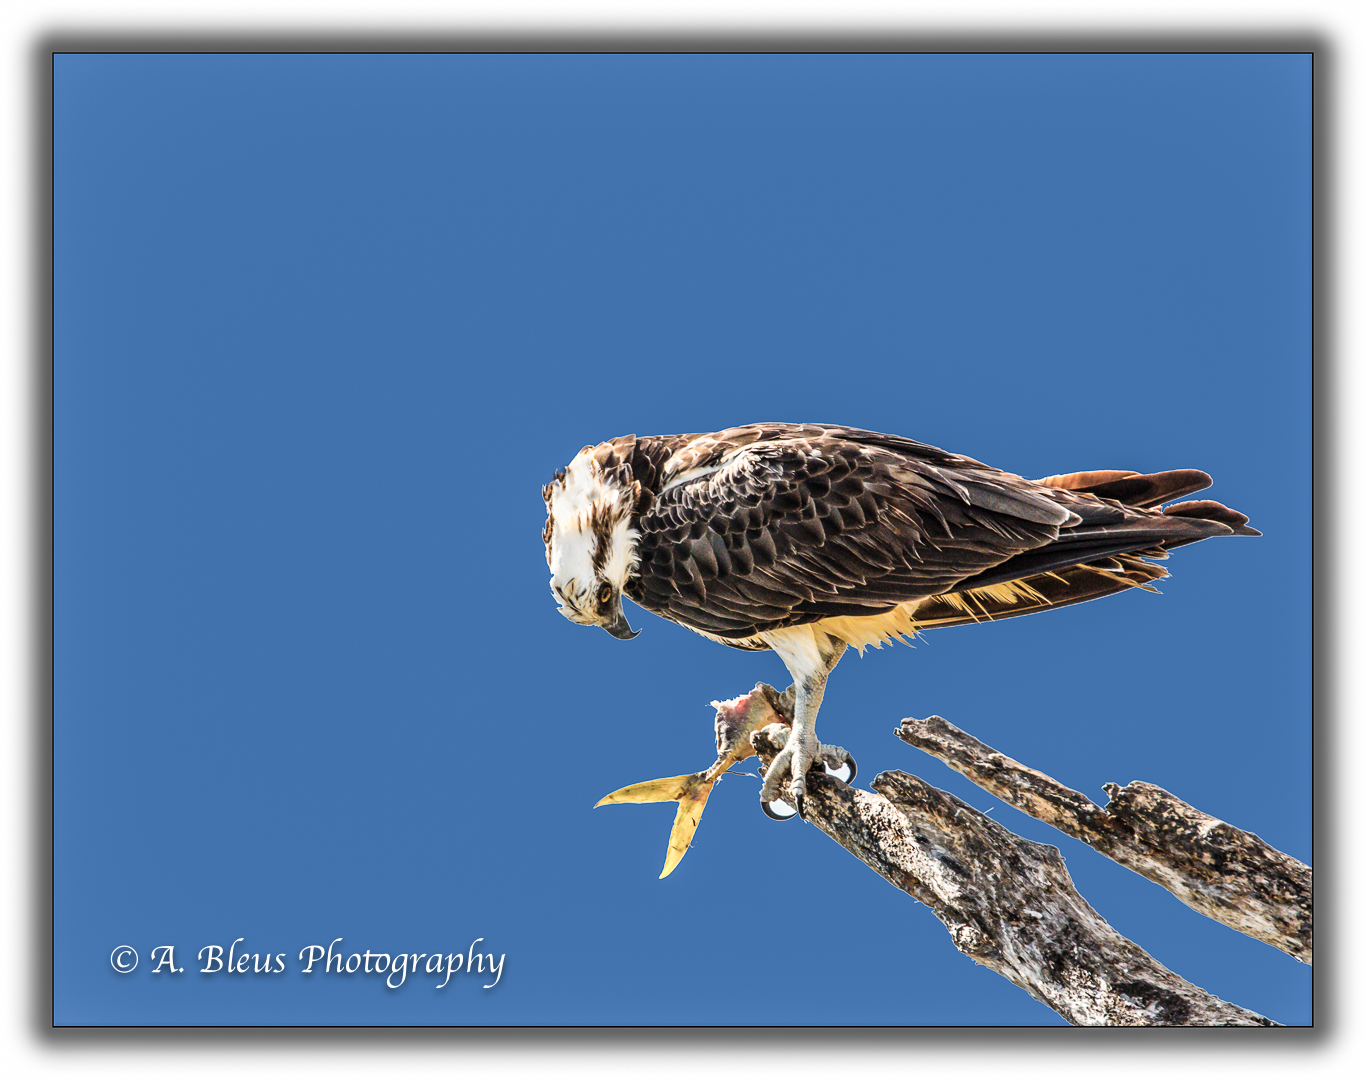 osprey-with-prey-mg_93e7328-2